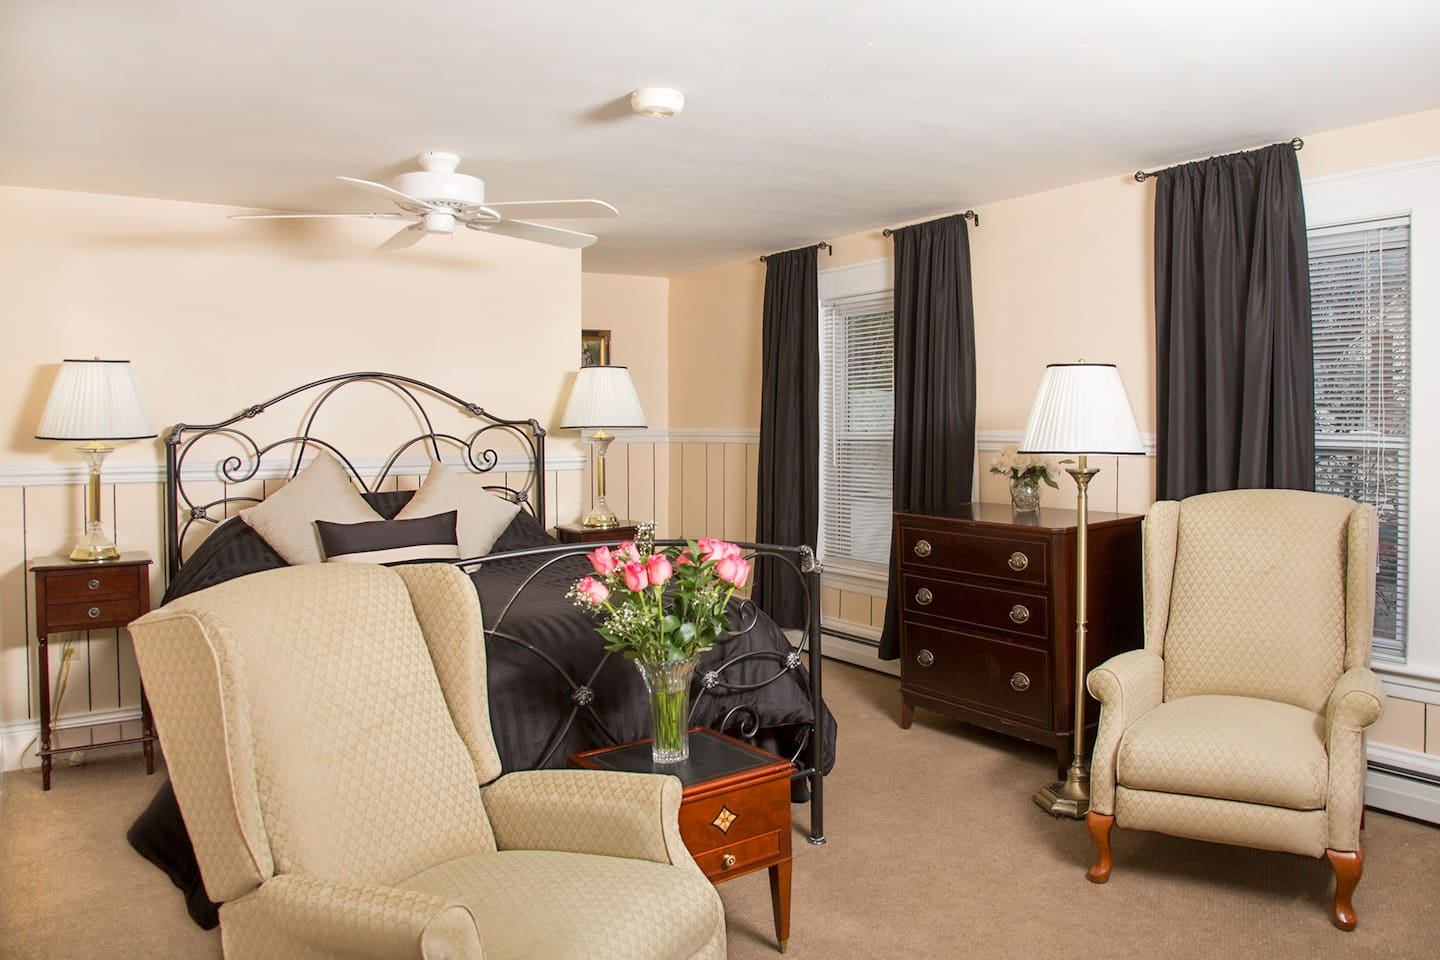 Adams Suite - elegant sitting room with reclining armchairs and romantic fireplace